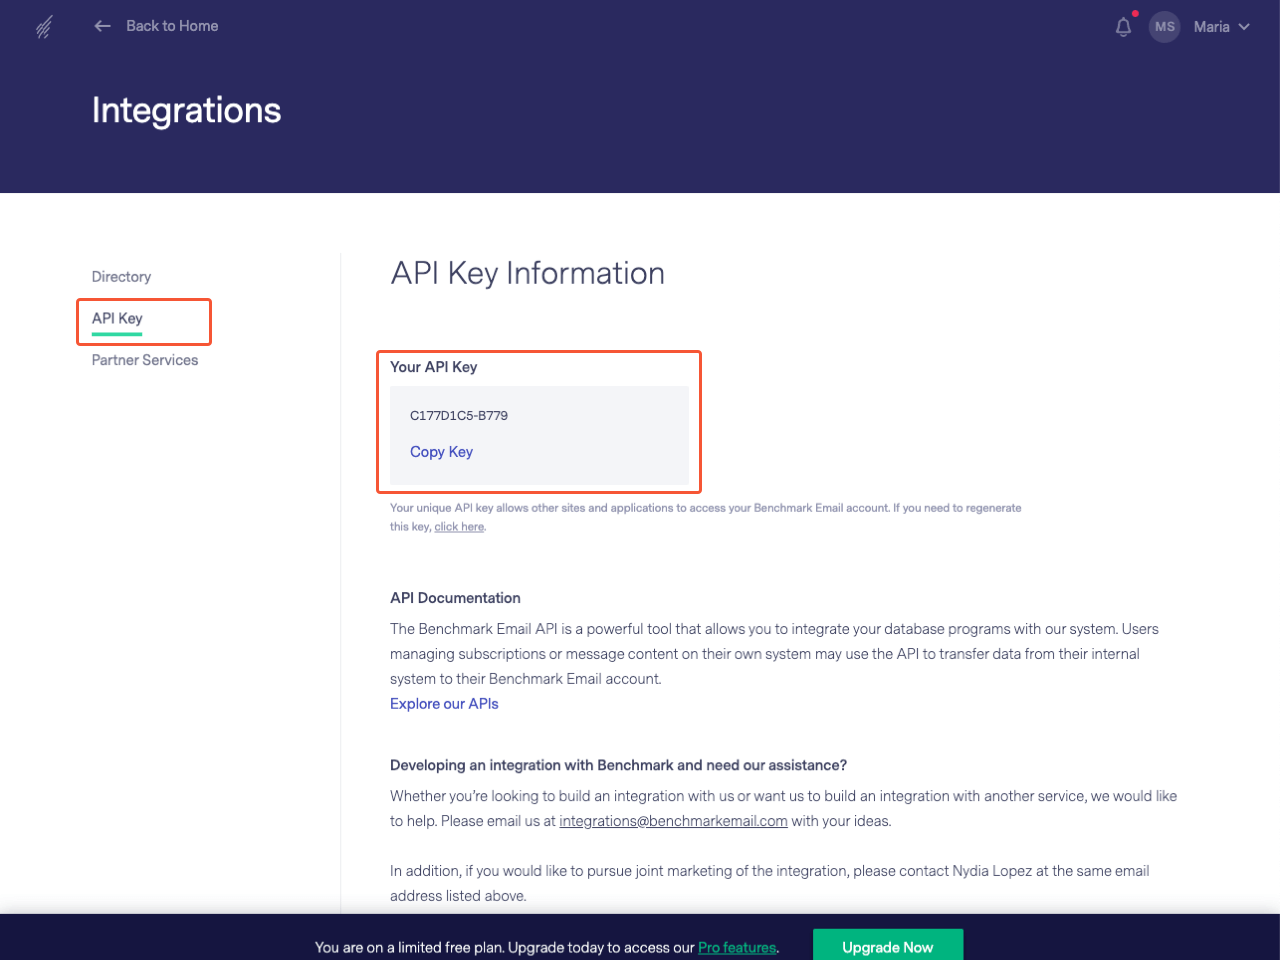 API key Information section of the Benchmark Email control panel